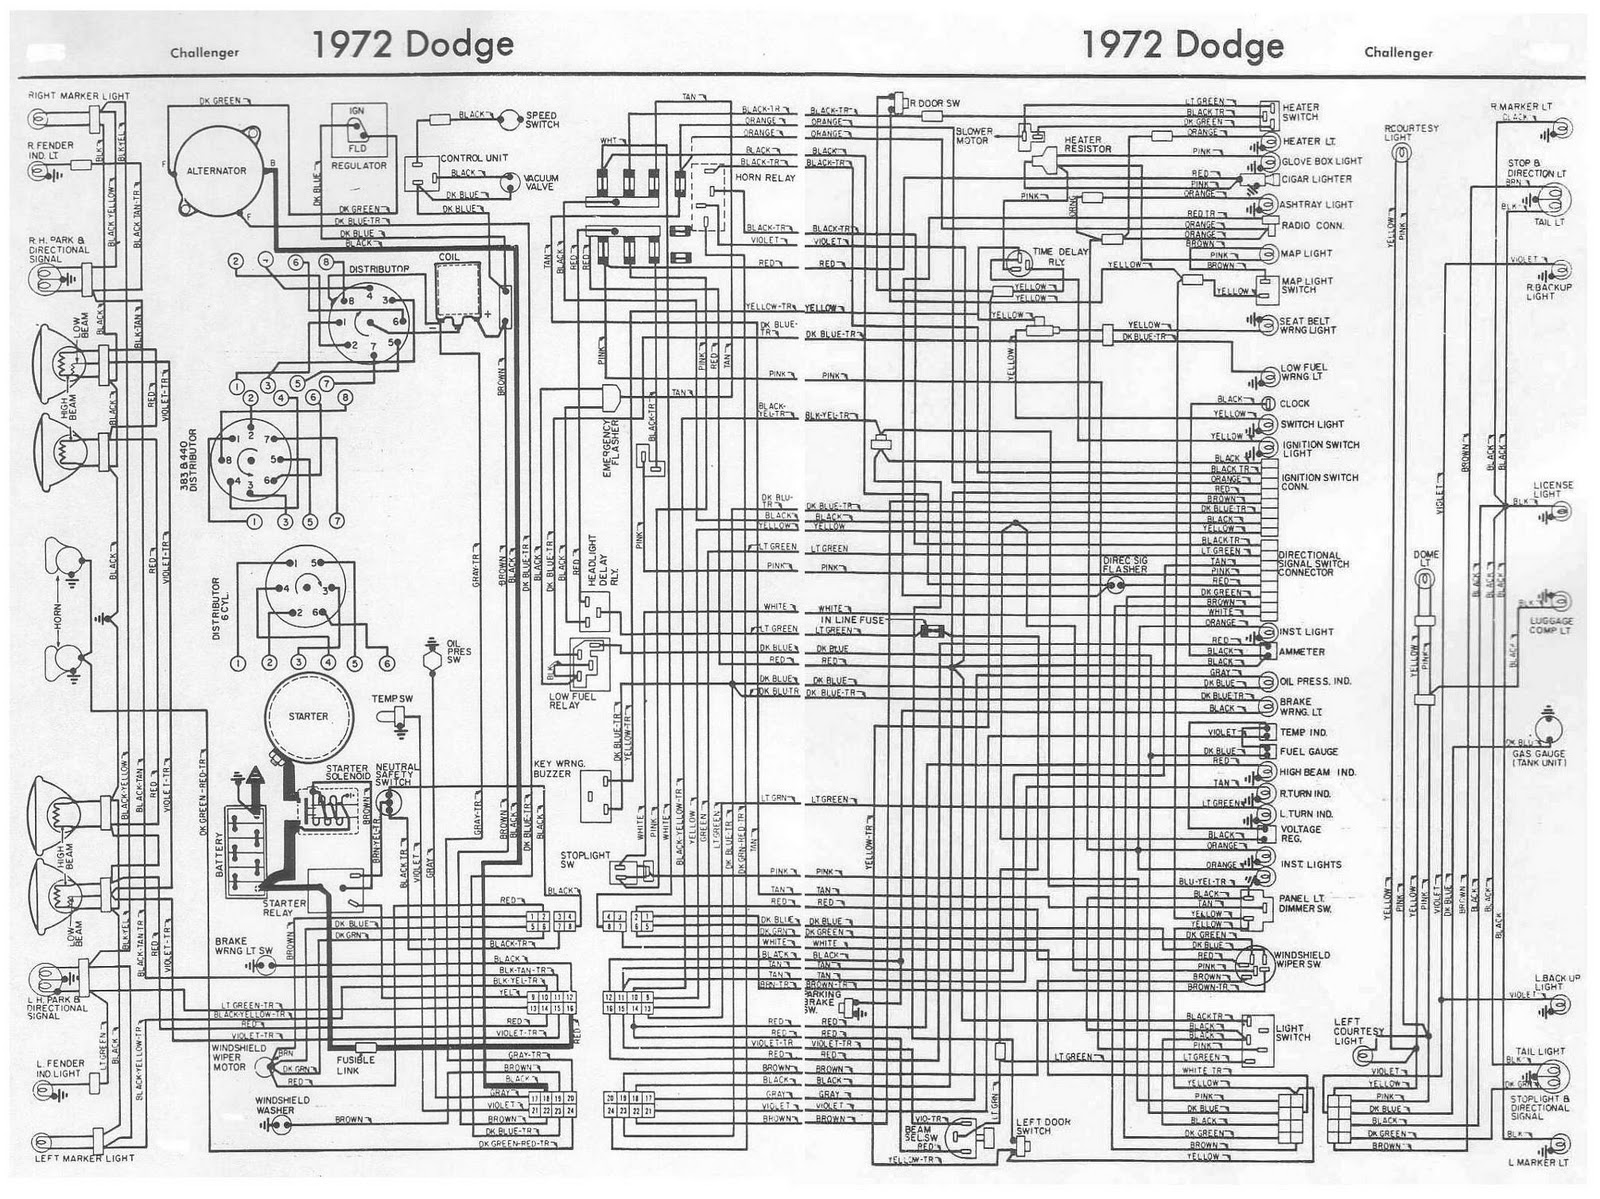 Dodge+Challenger+1972+Complete+Wiring+Diagram dodge challenger 1972 complete wiring diagram all about wiring 1970 dodge charger wiring harness at aneh.co